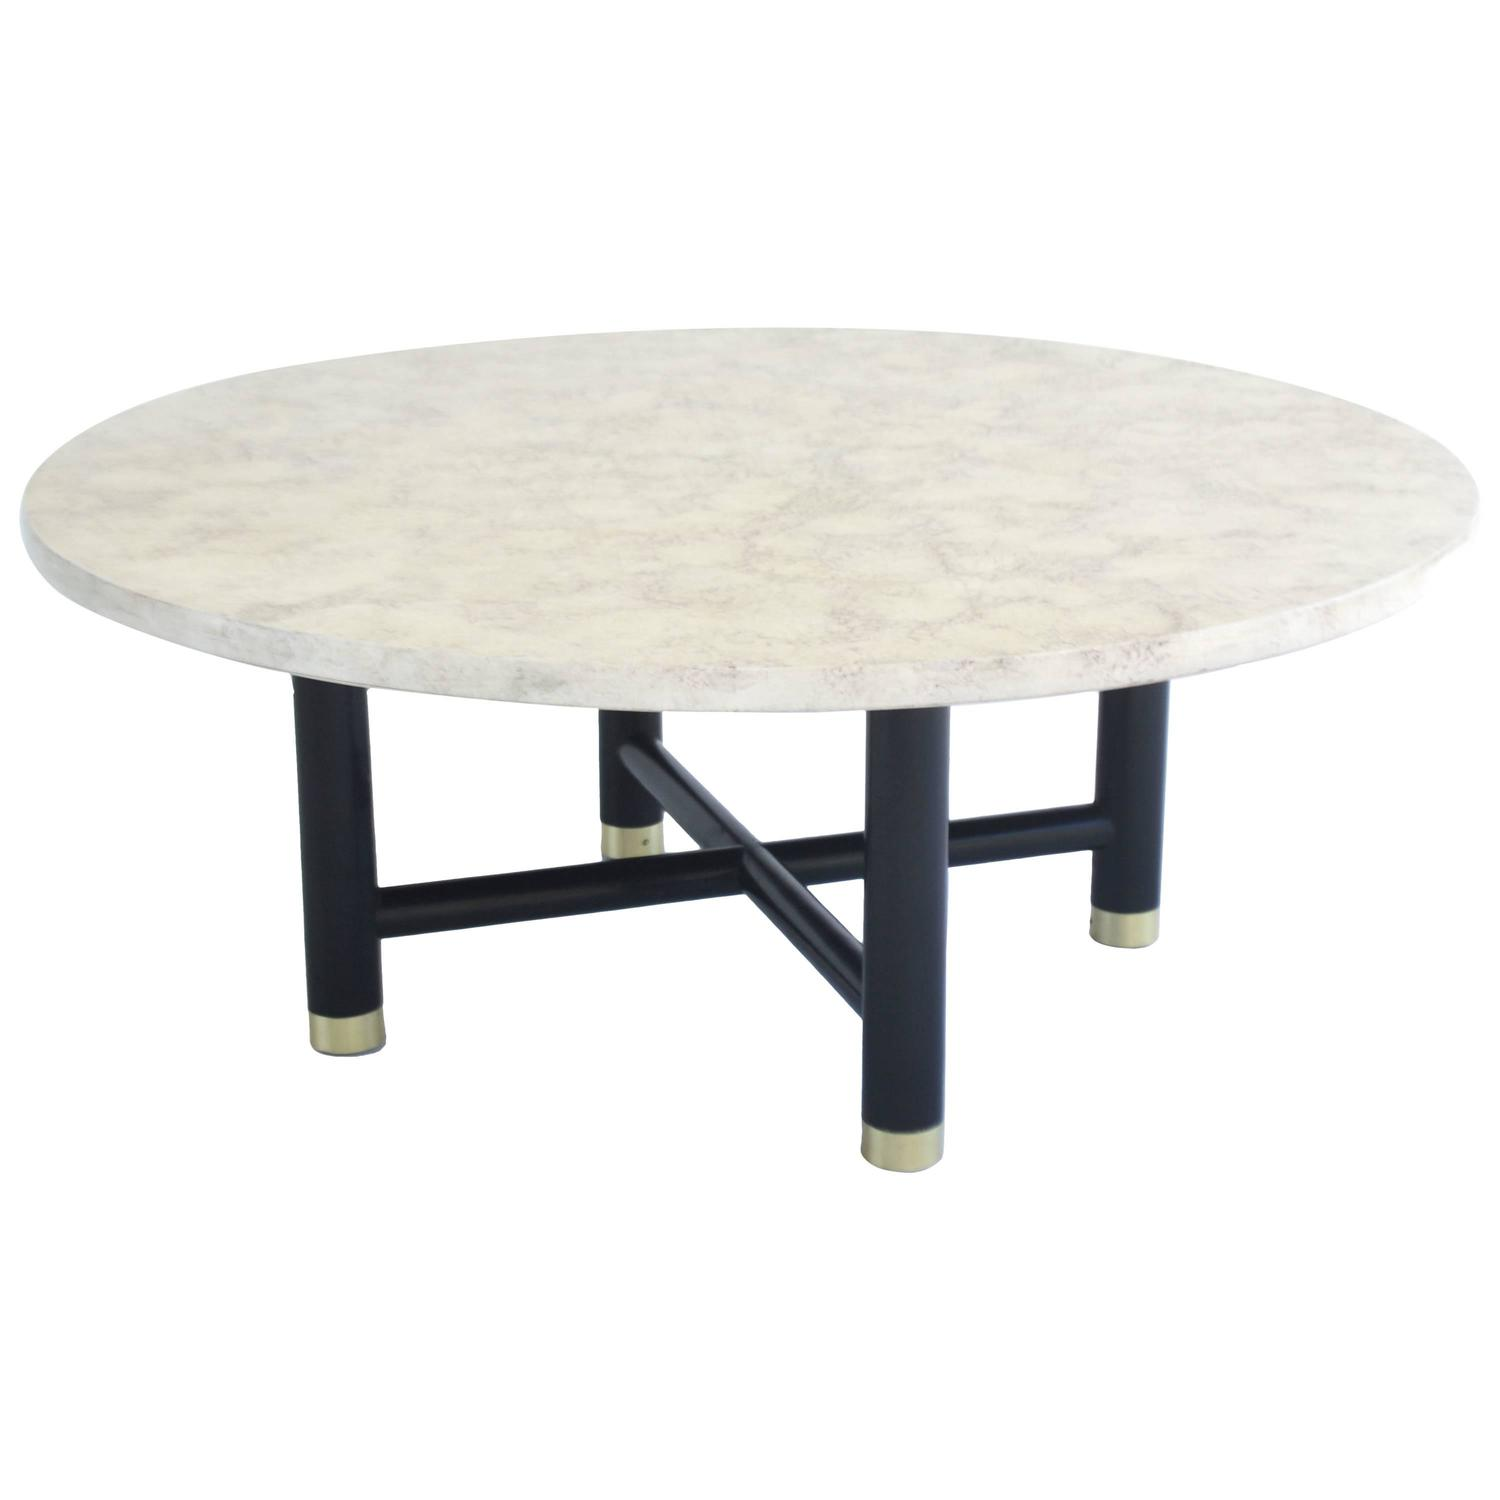 Round Marbleized Cocktail Table On Ebonized Base At 1stdibs